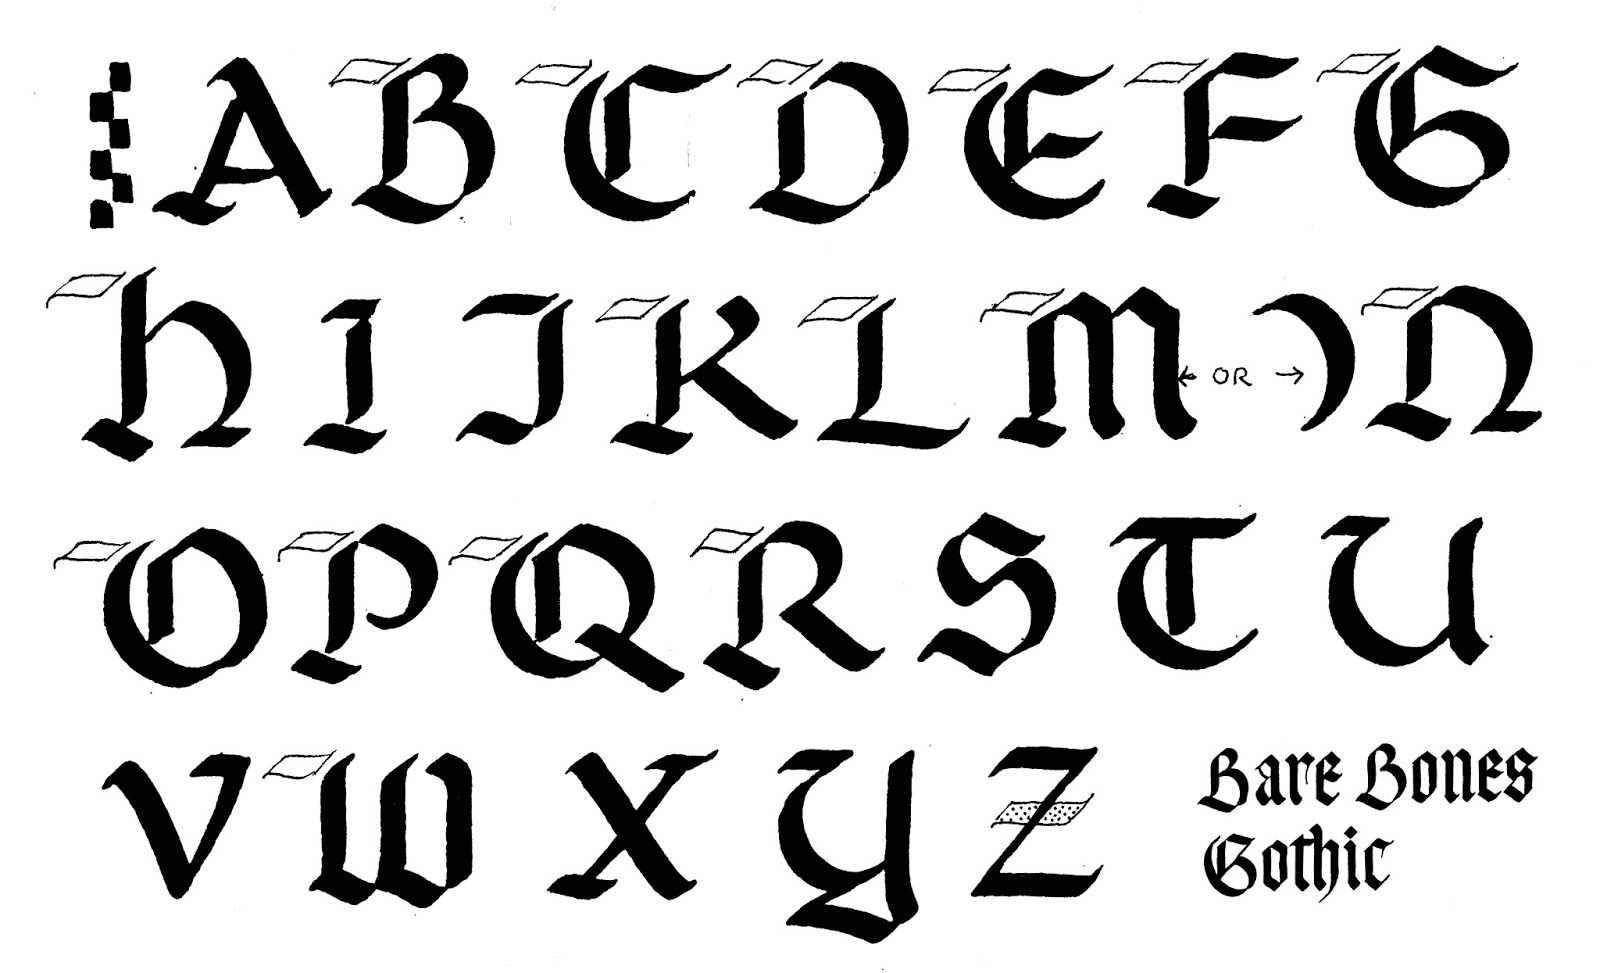 Medieval Gothic Script Letters By Mfritz May 6 2017 View Original